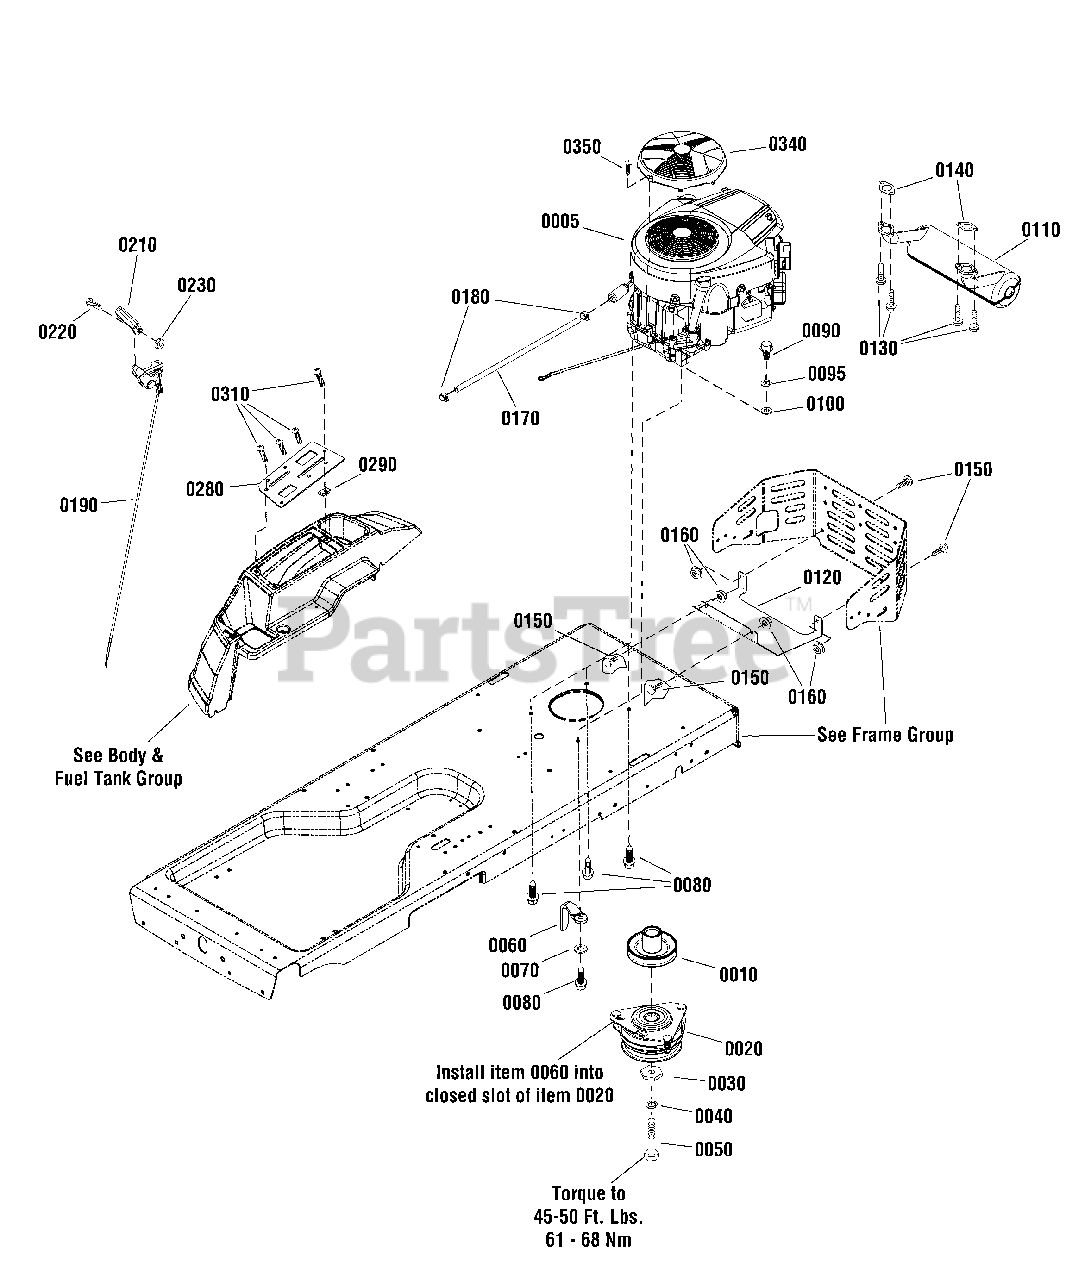 Simplicity Parts On The Engine Group Diagram For